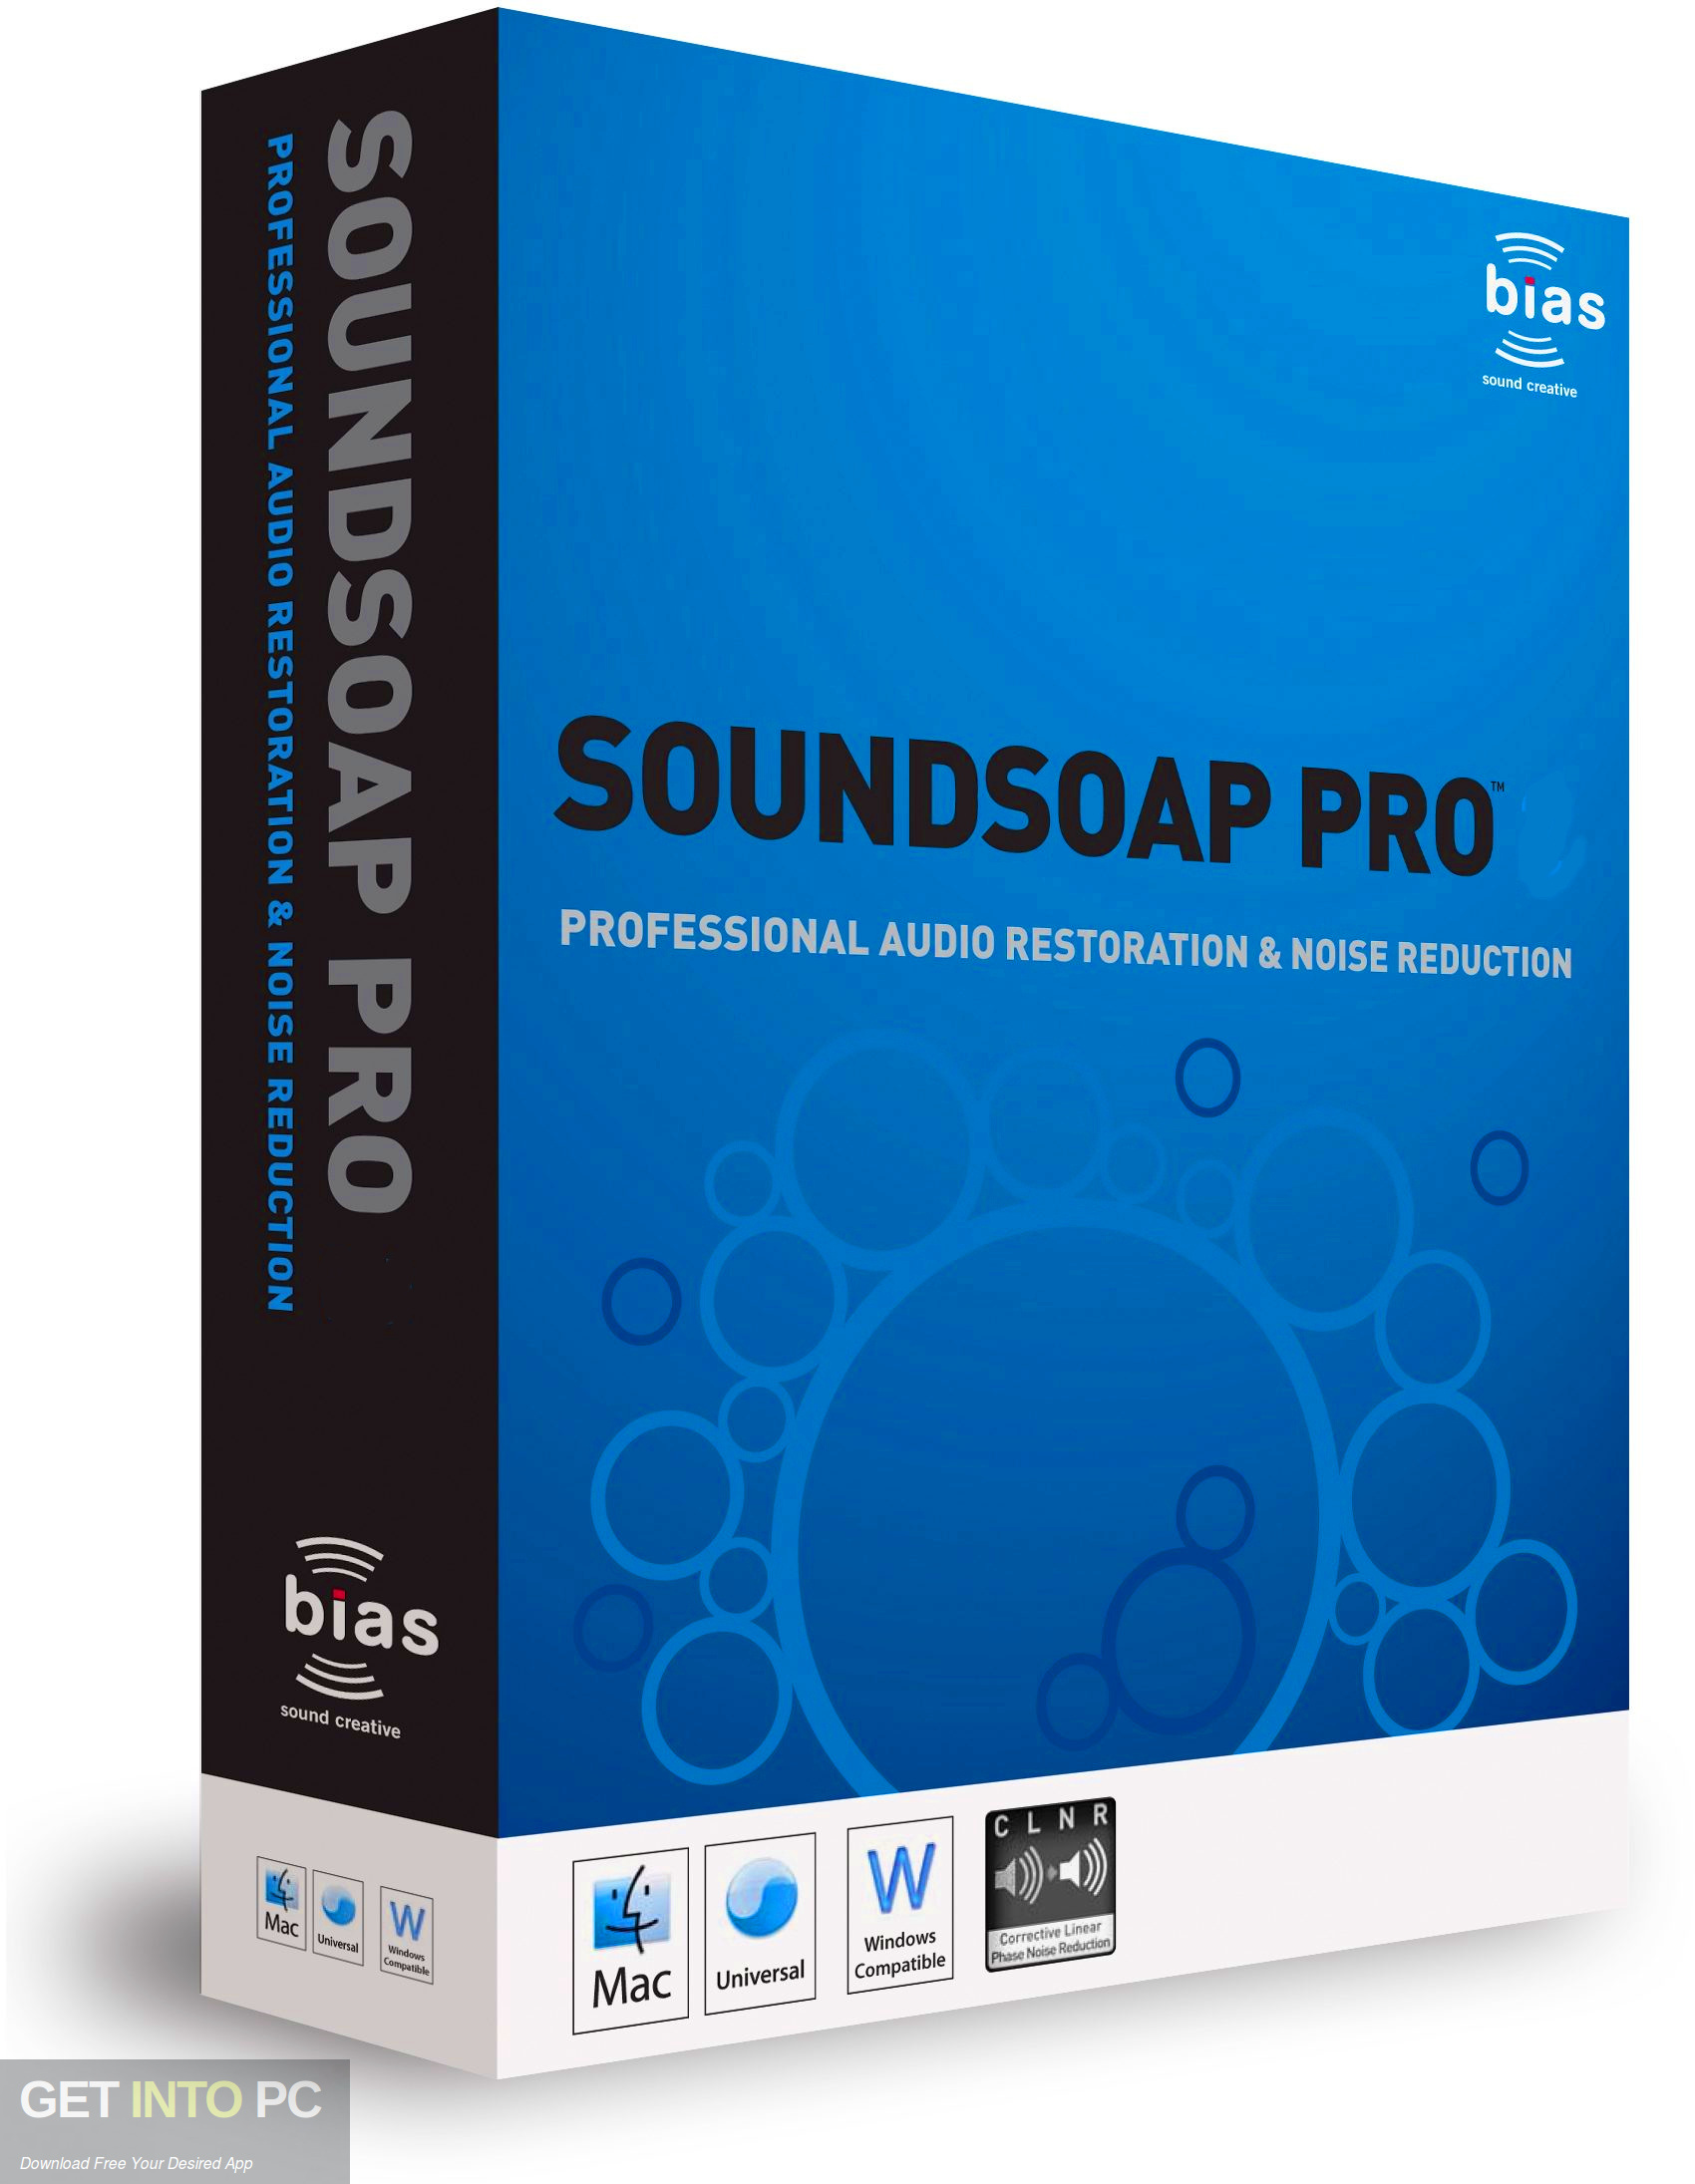 BIAS - SoundSoap PRO VST Free Download-GetintoPC.com